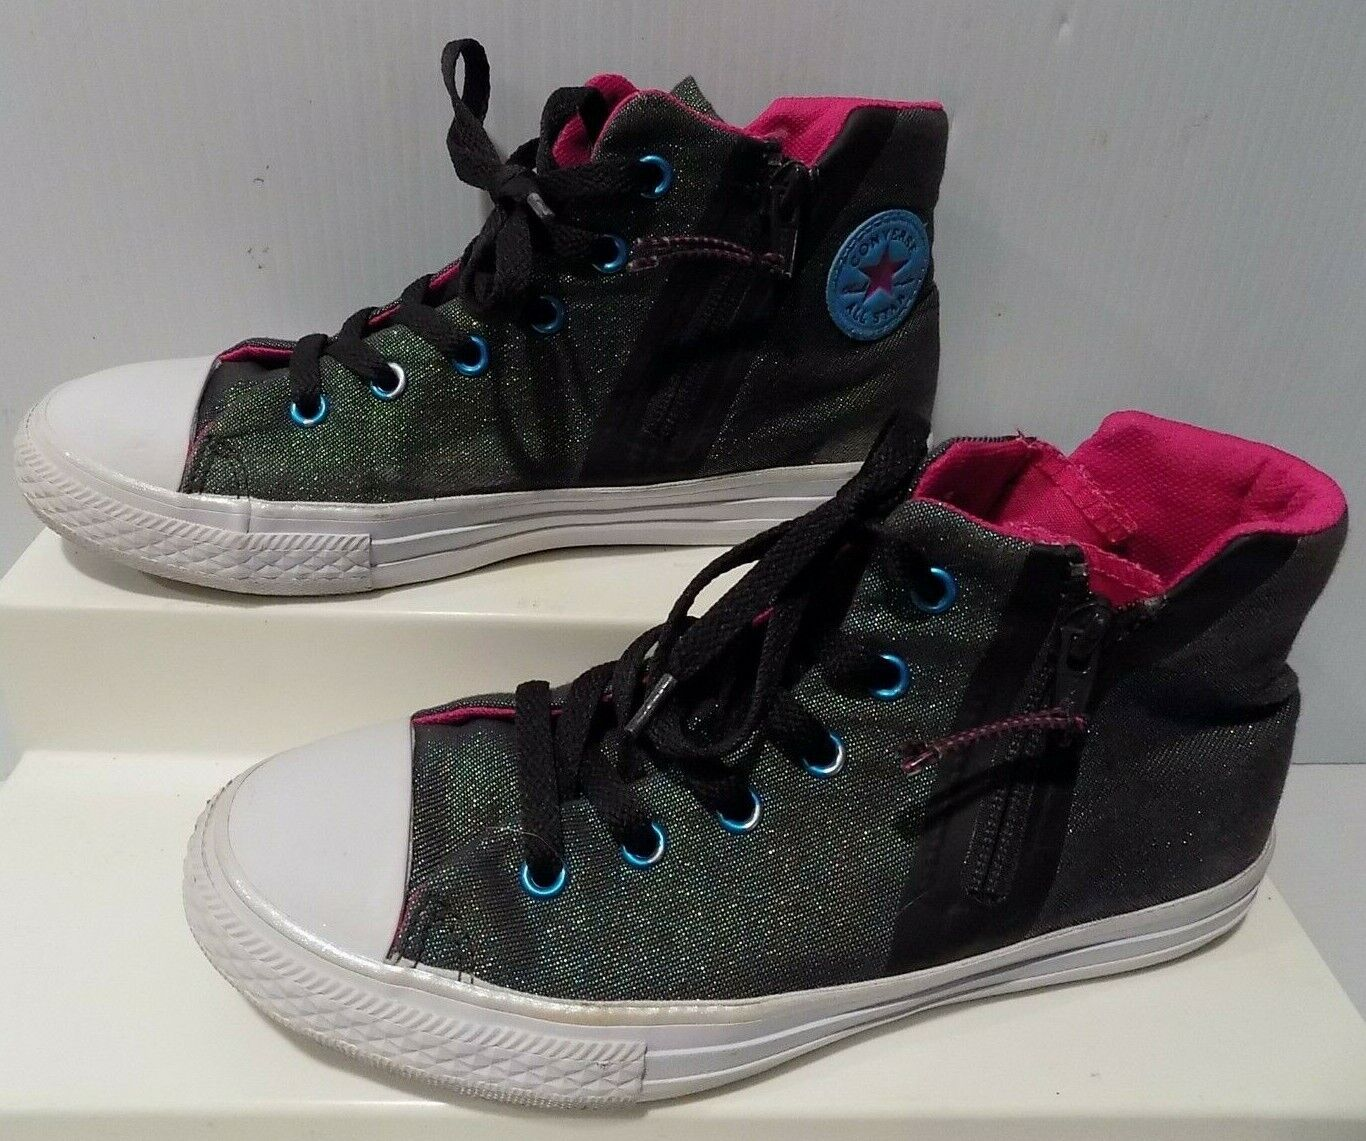 Star Sneakers Shoes Iridescent Size